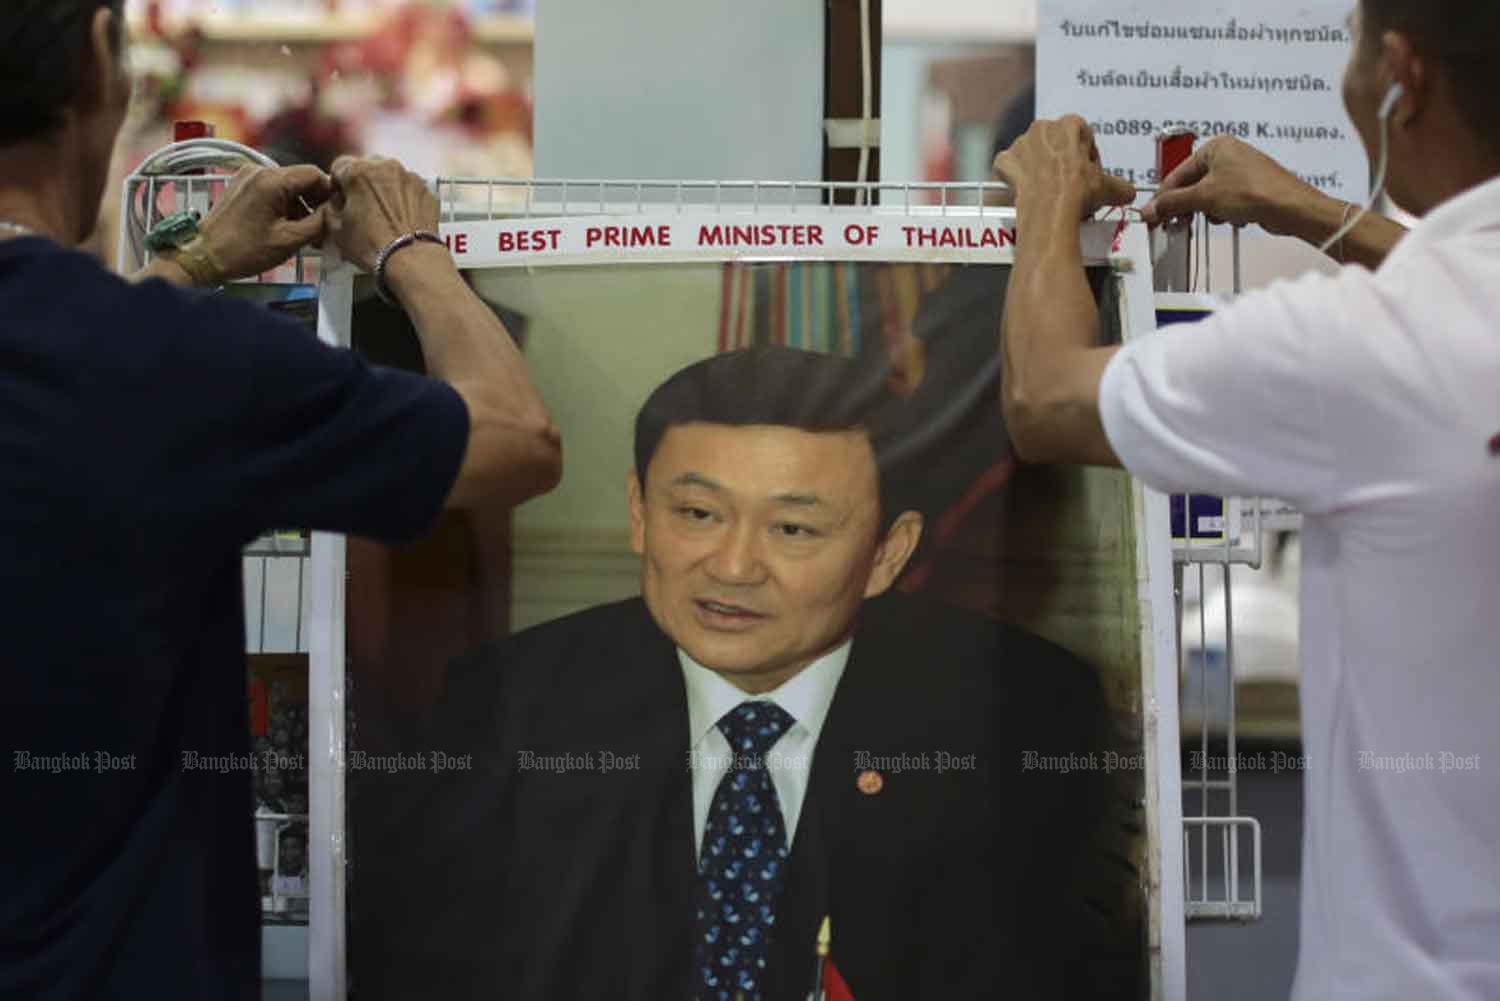 PM snubs Thaksin offer to help secure vaccines